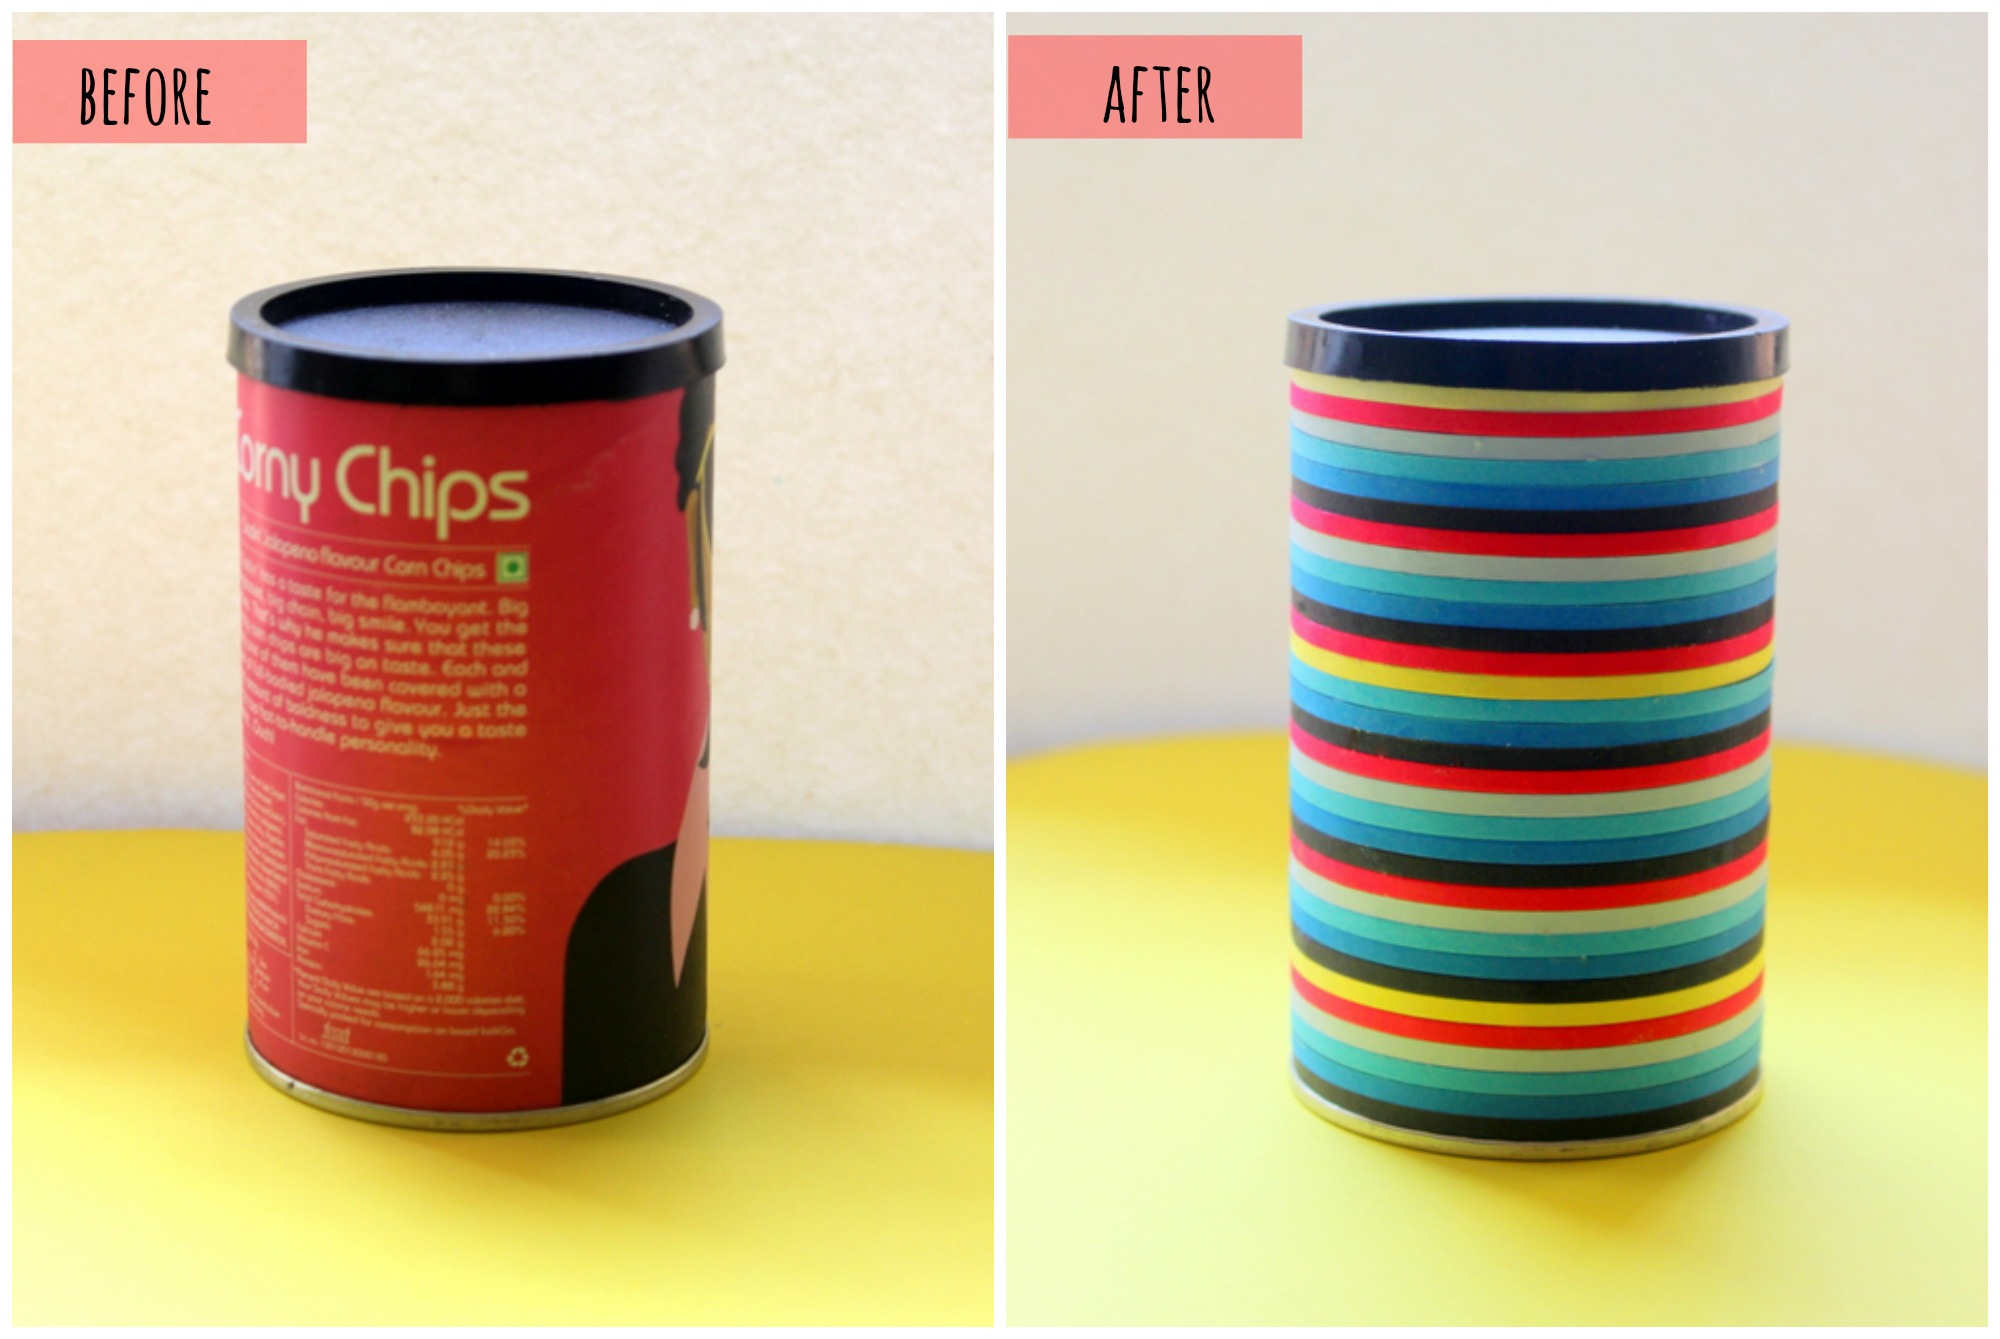 before and after shots of chip box